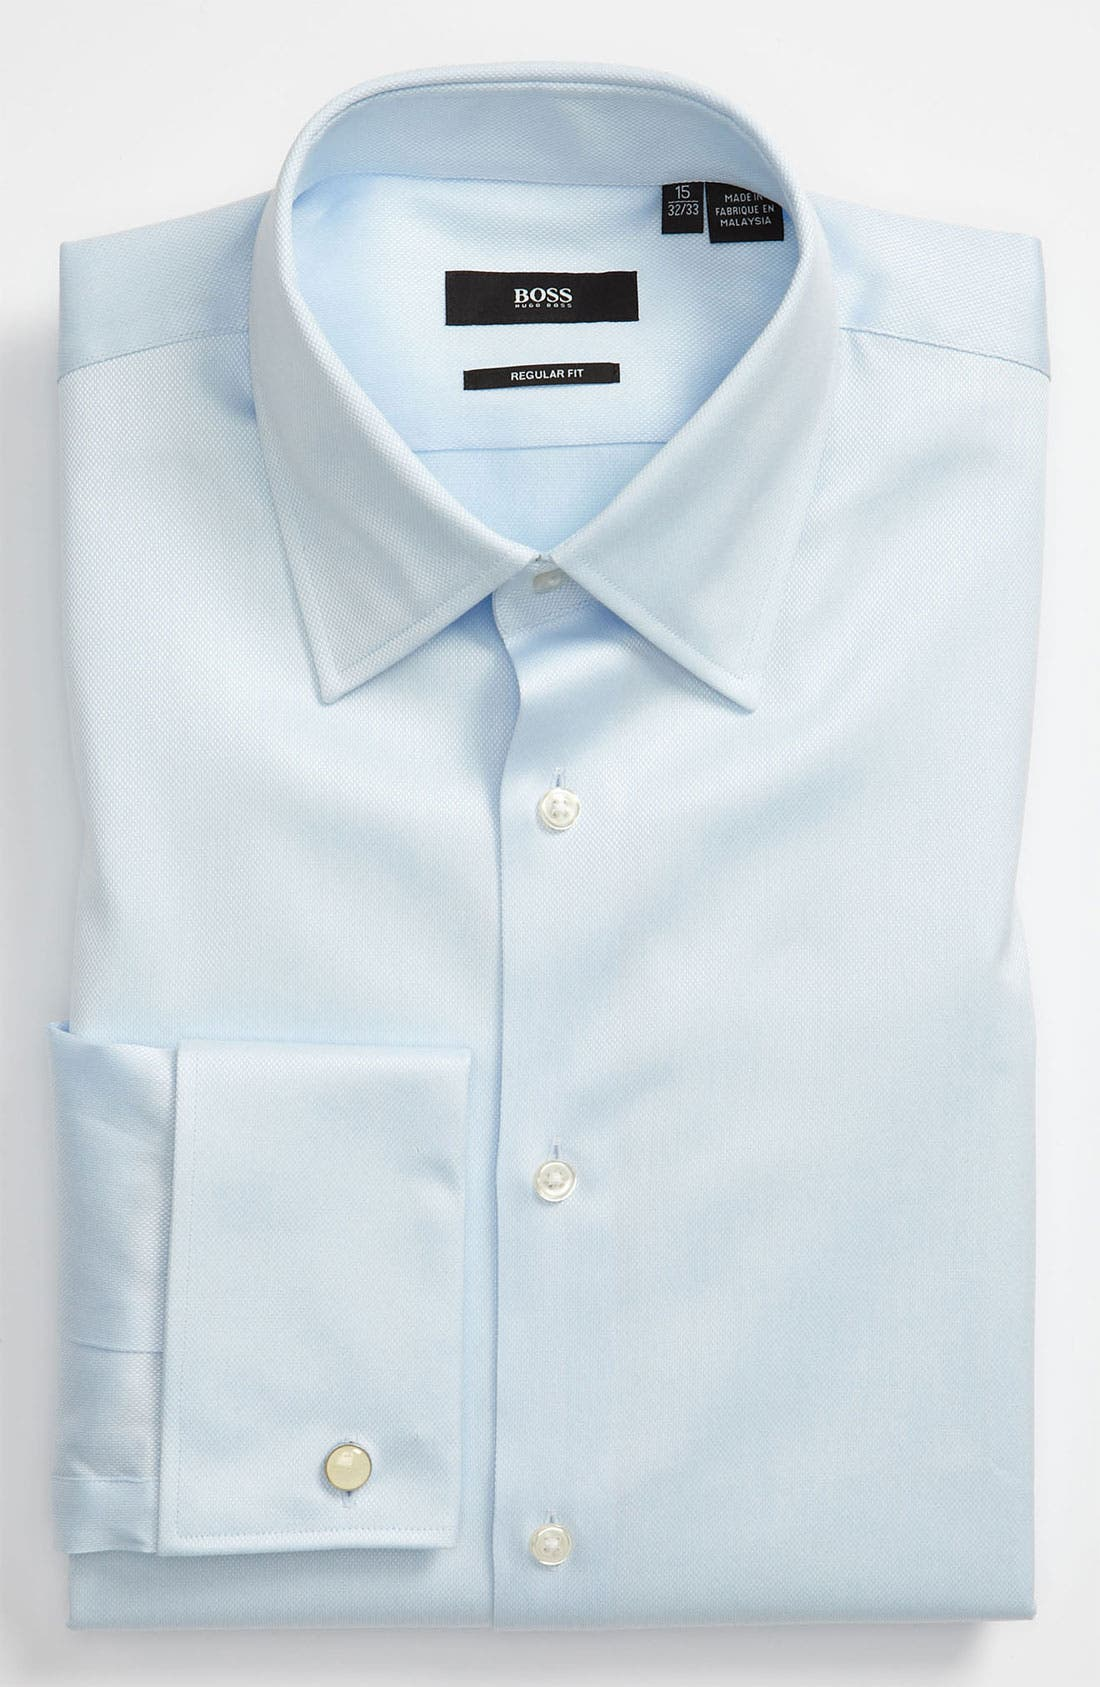 Main Image - BOSS 'Lawrence' US Regular Fit French Cuff Dress Shirt